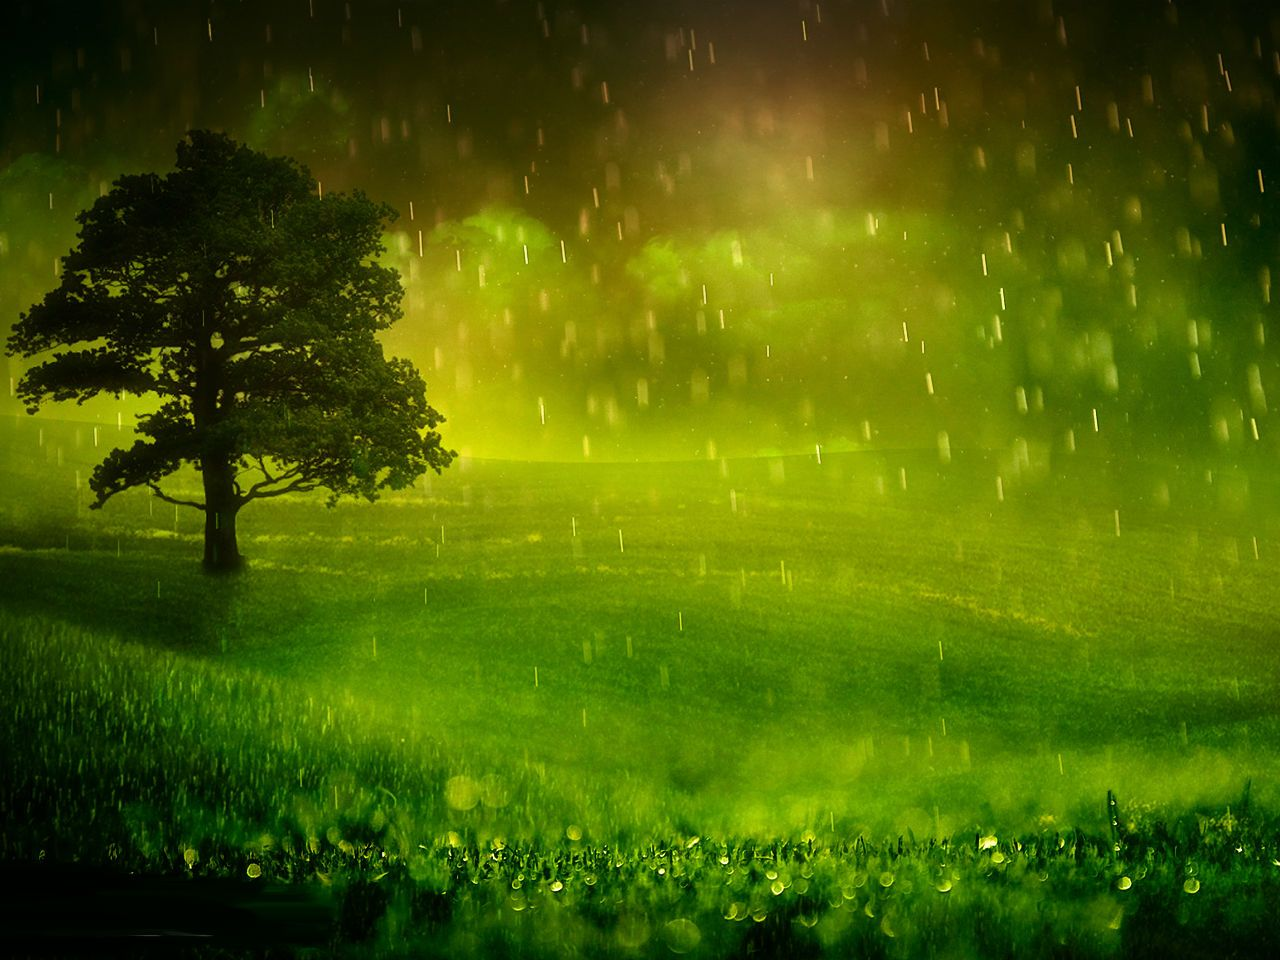 rainy day wallpaper rainy day hd wallpapers pictures images backgrounds photos